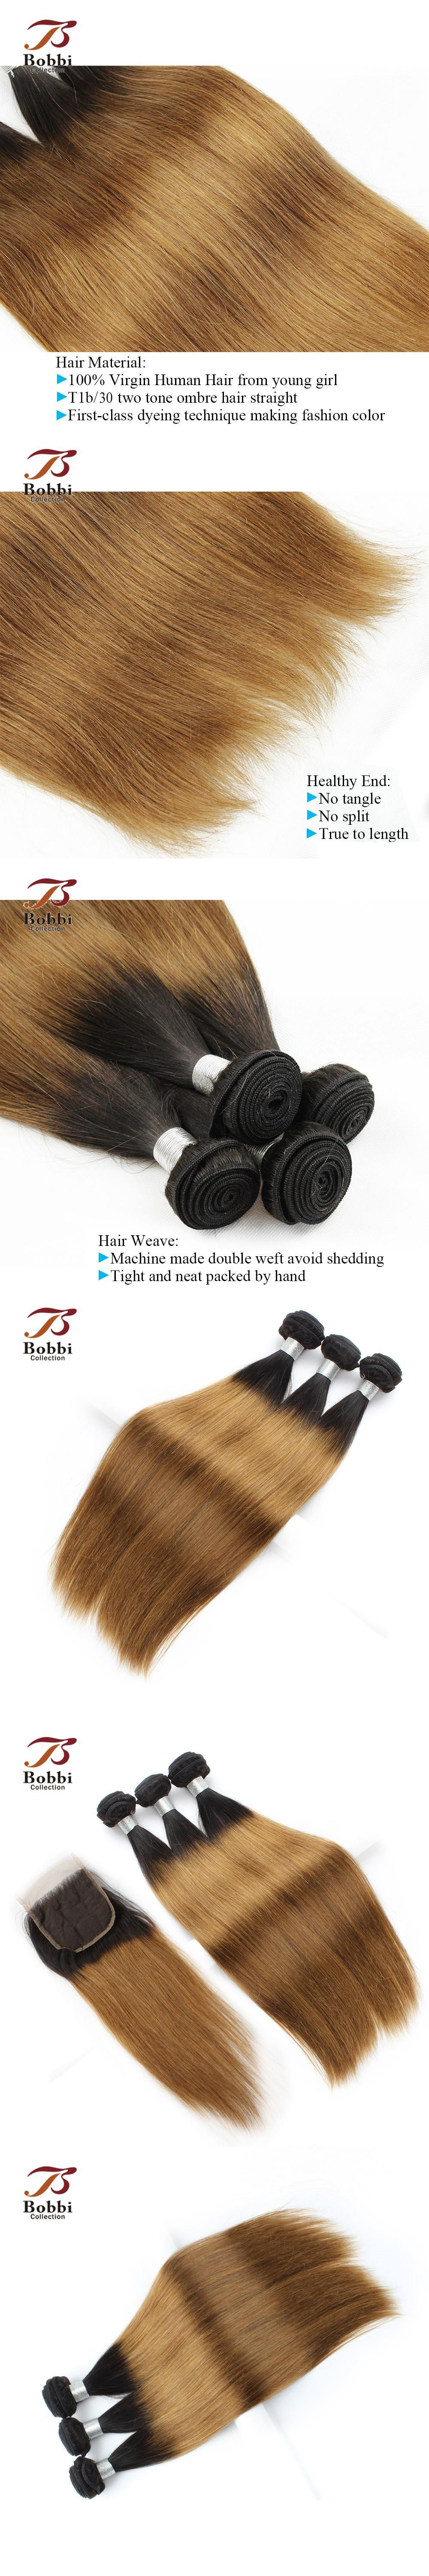 Straight Human Hair Extensions Ombre Indian Hair Weave 3 Bundles